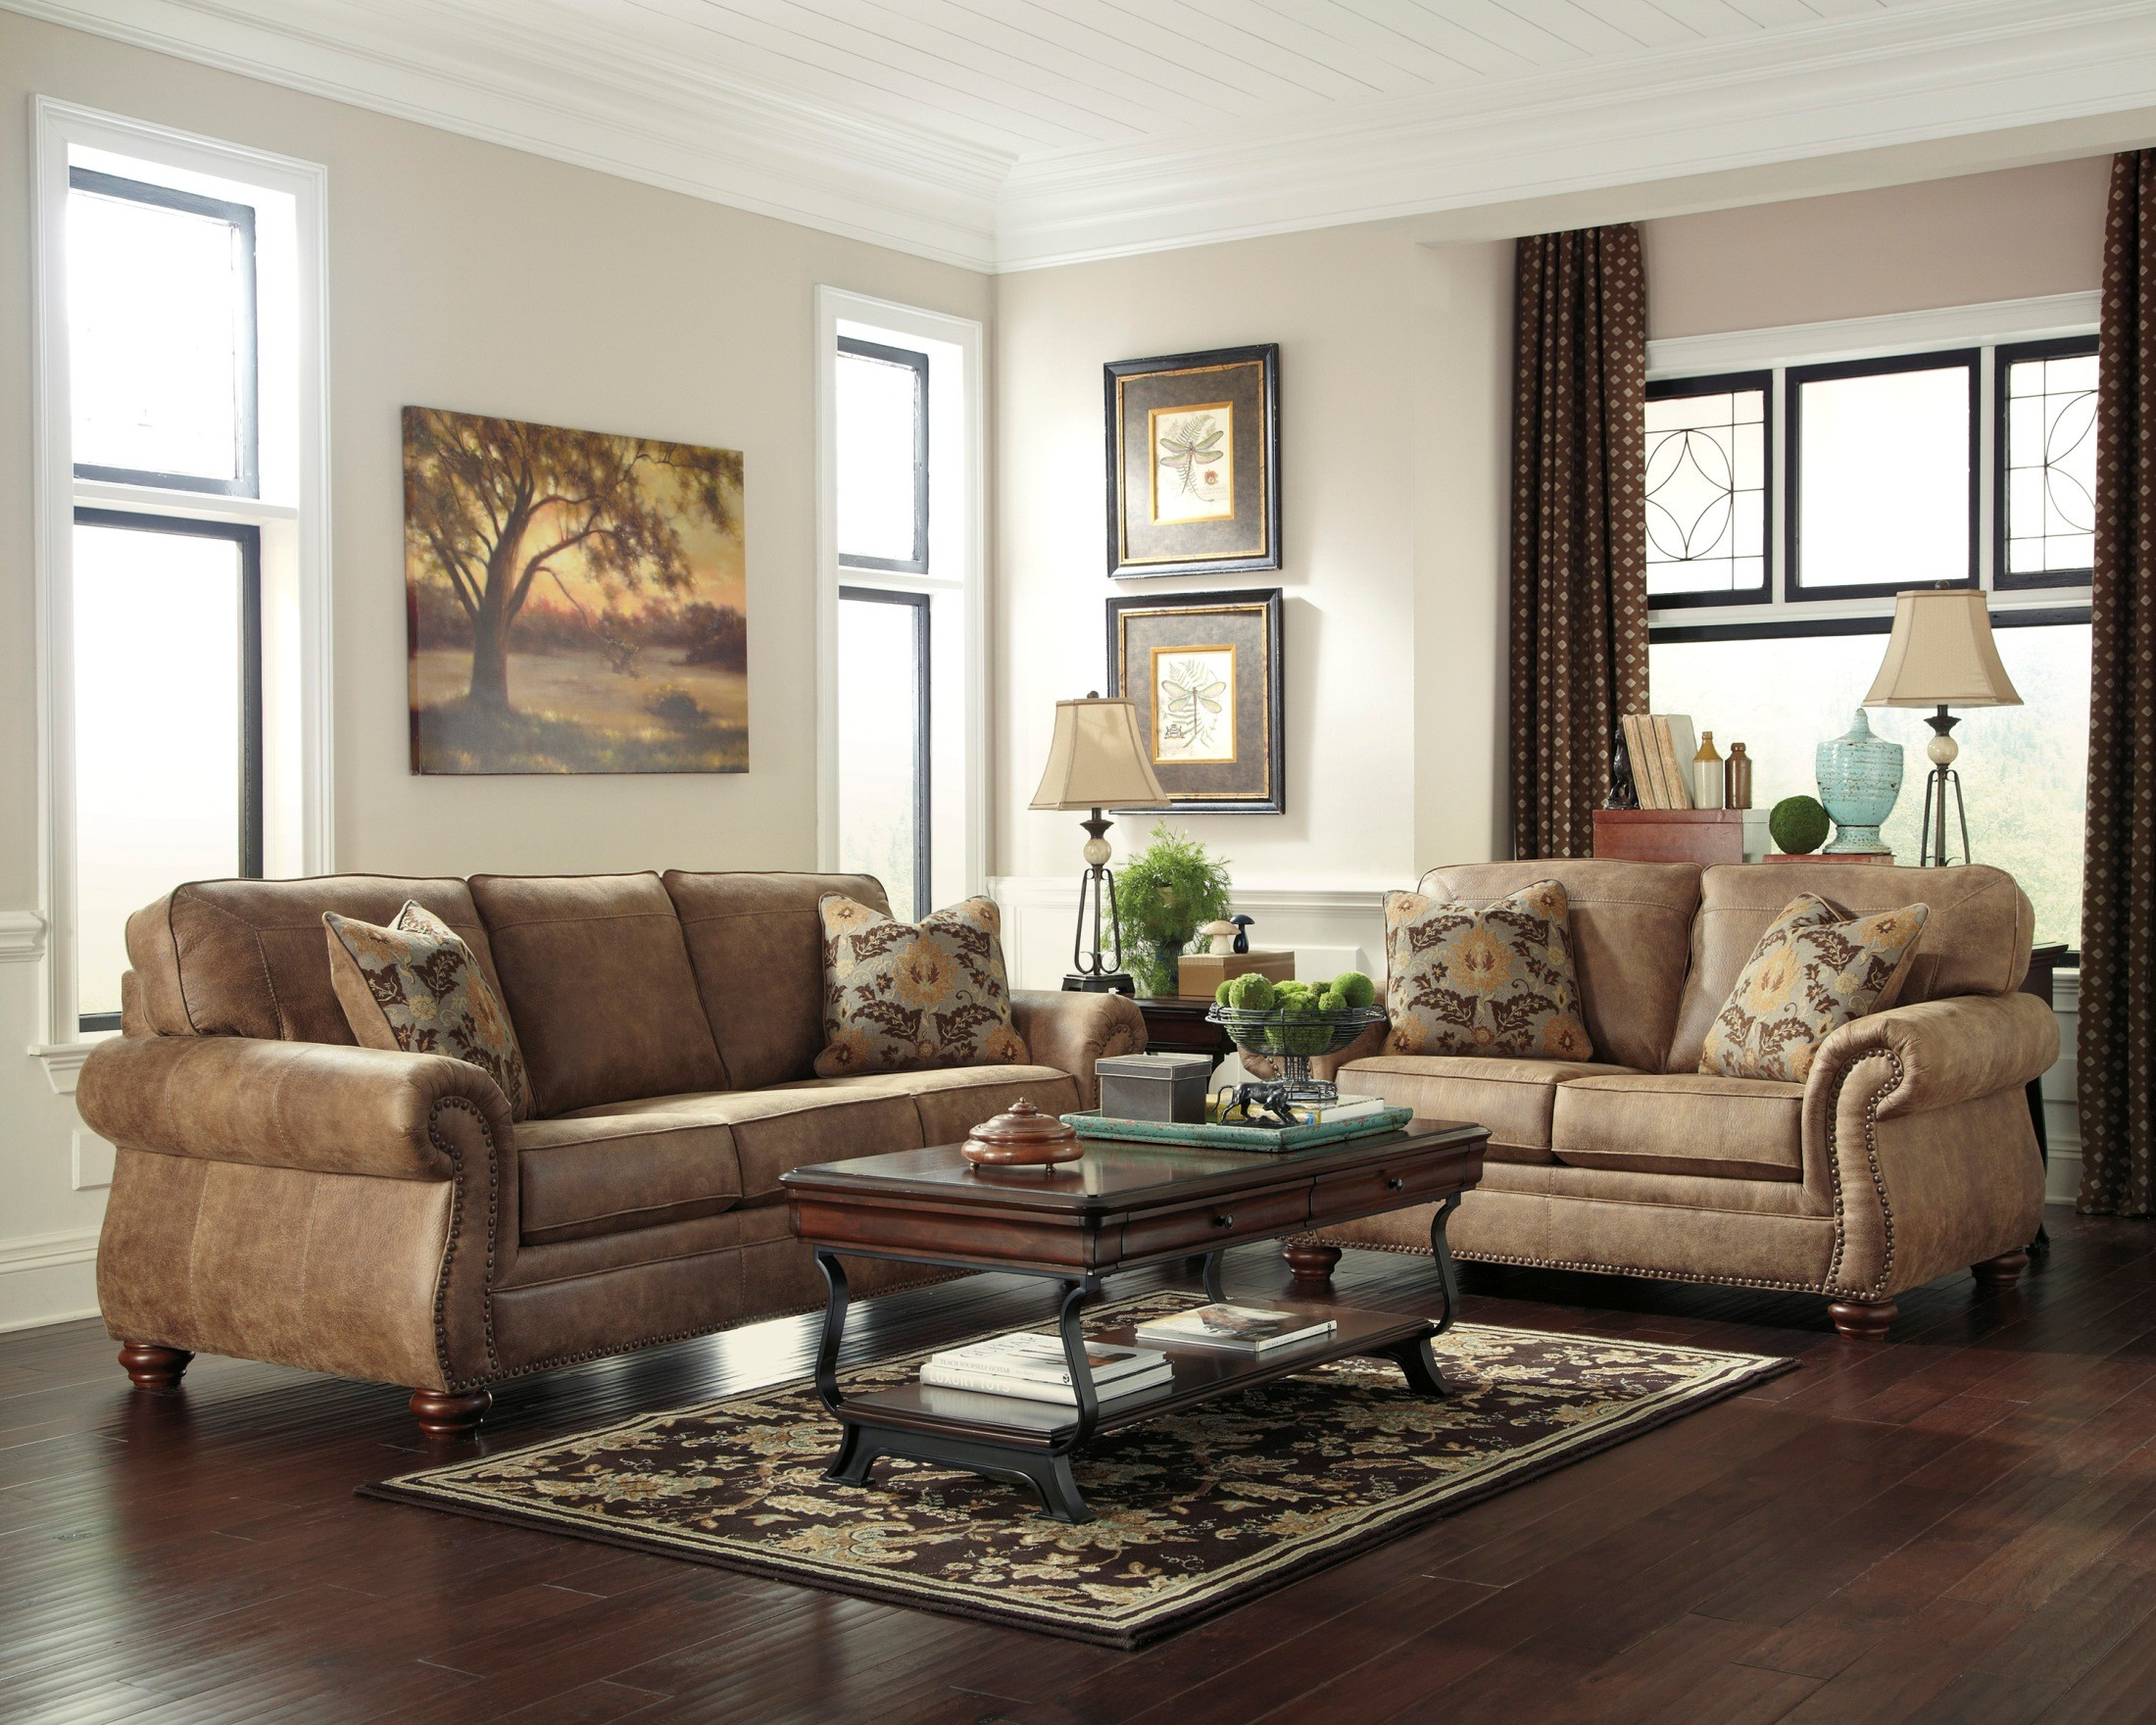 furniture for livingroom larkinhurst earth living room set from ashley 31901 38 35 coleman furniture 9395